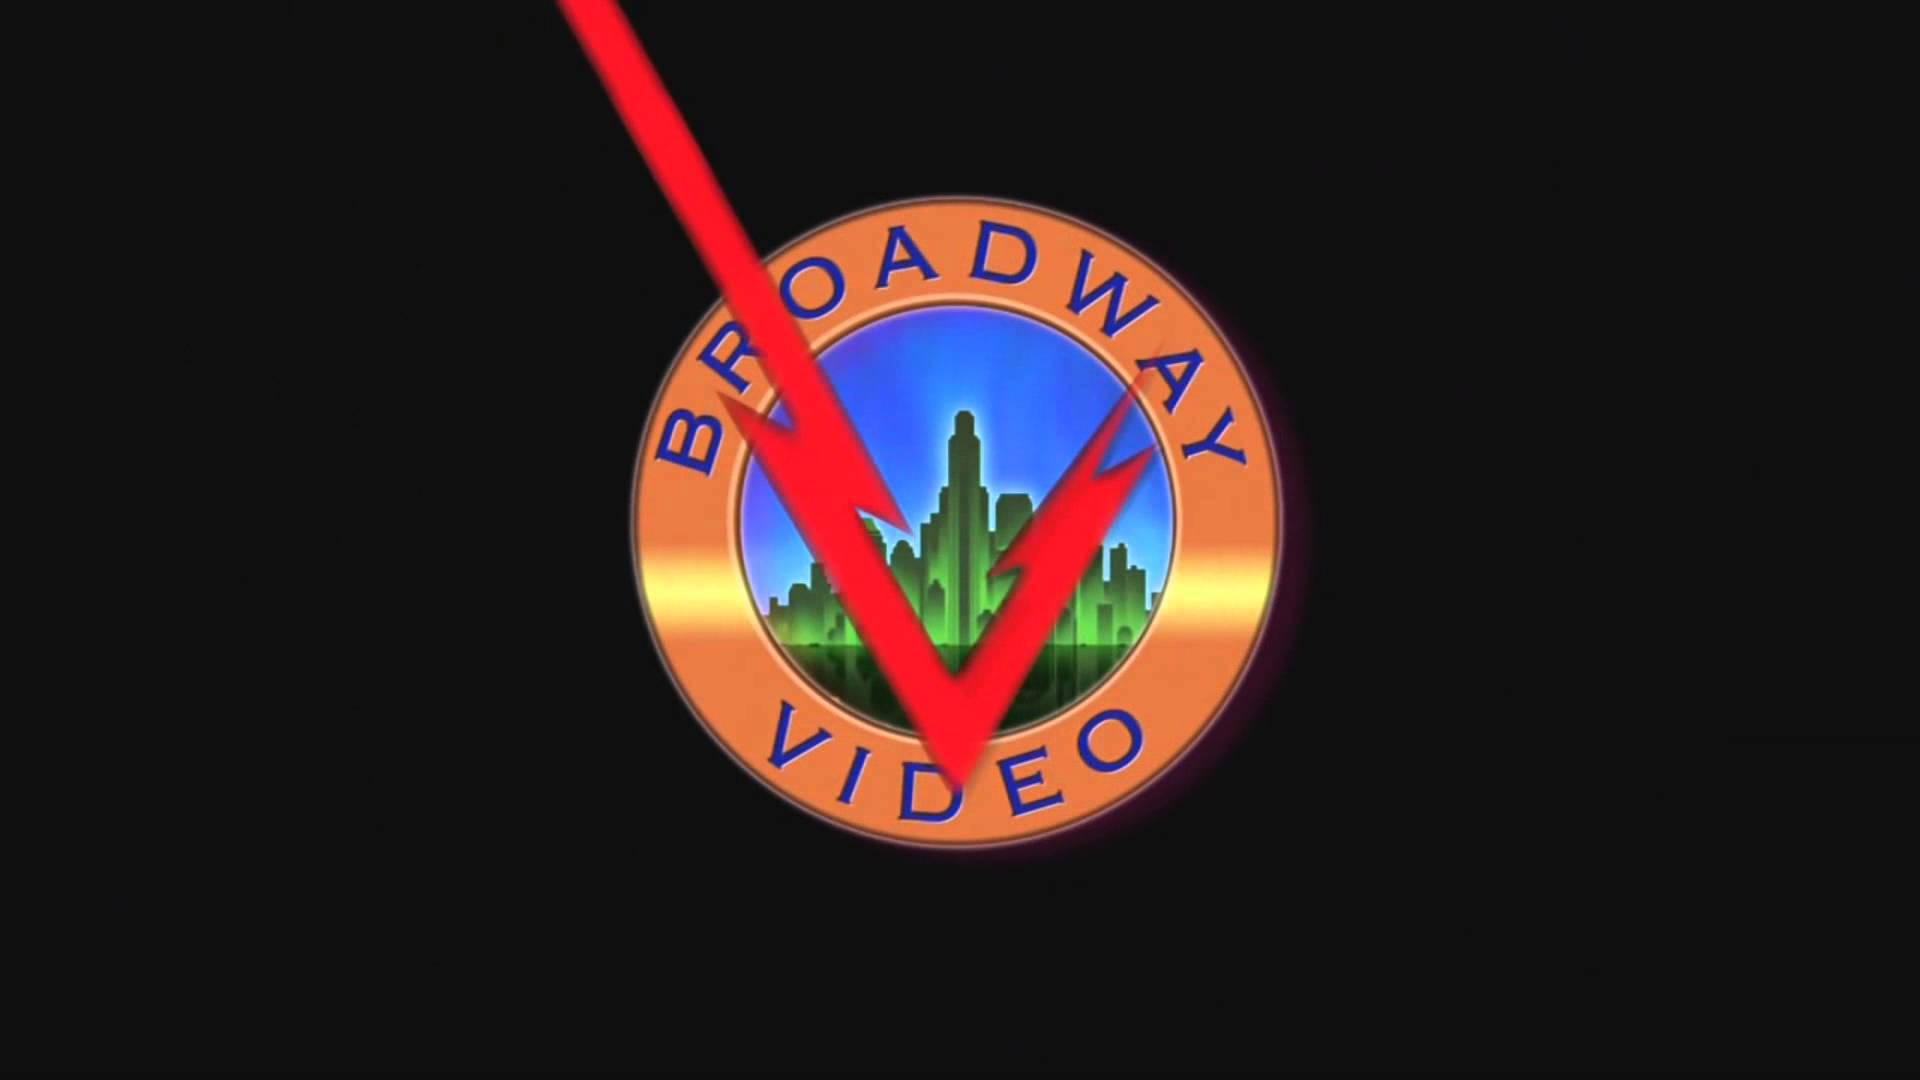 Broadwayvideologo.jpg